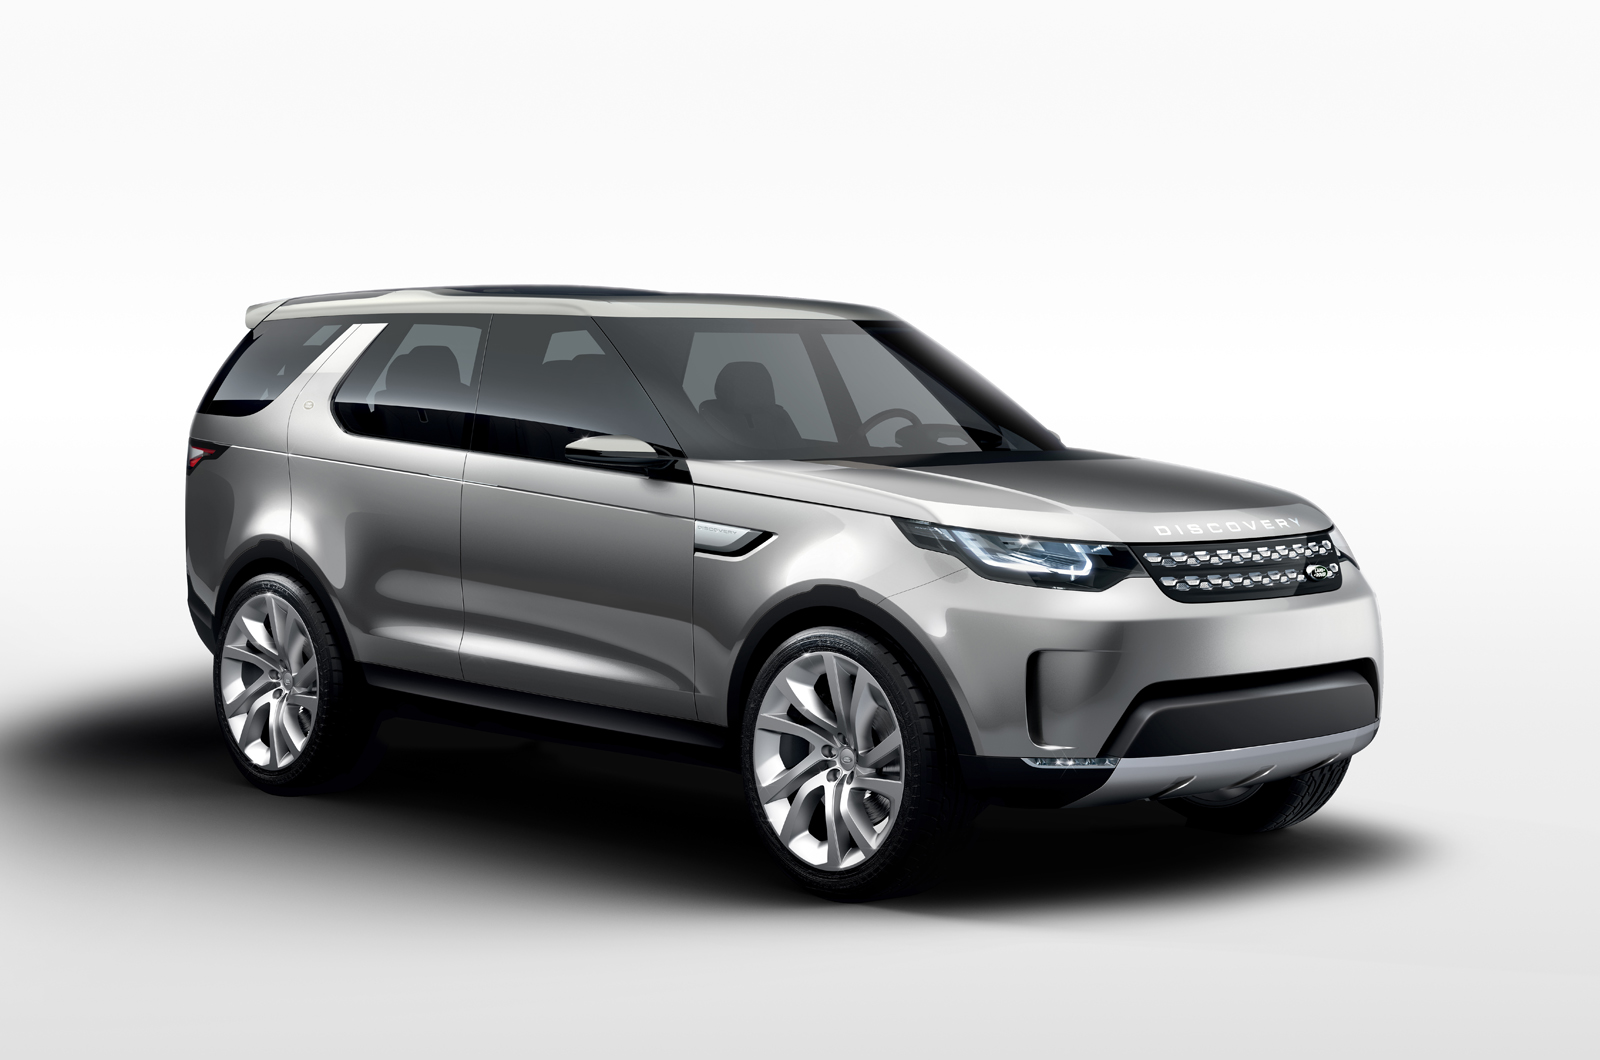 new land rover discovery suv vision concept photo gallery car gallery luxury suvs autocar. Black Bedroom Furniture Sets. Home Design Ideas